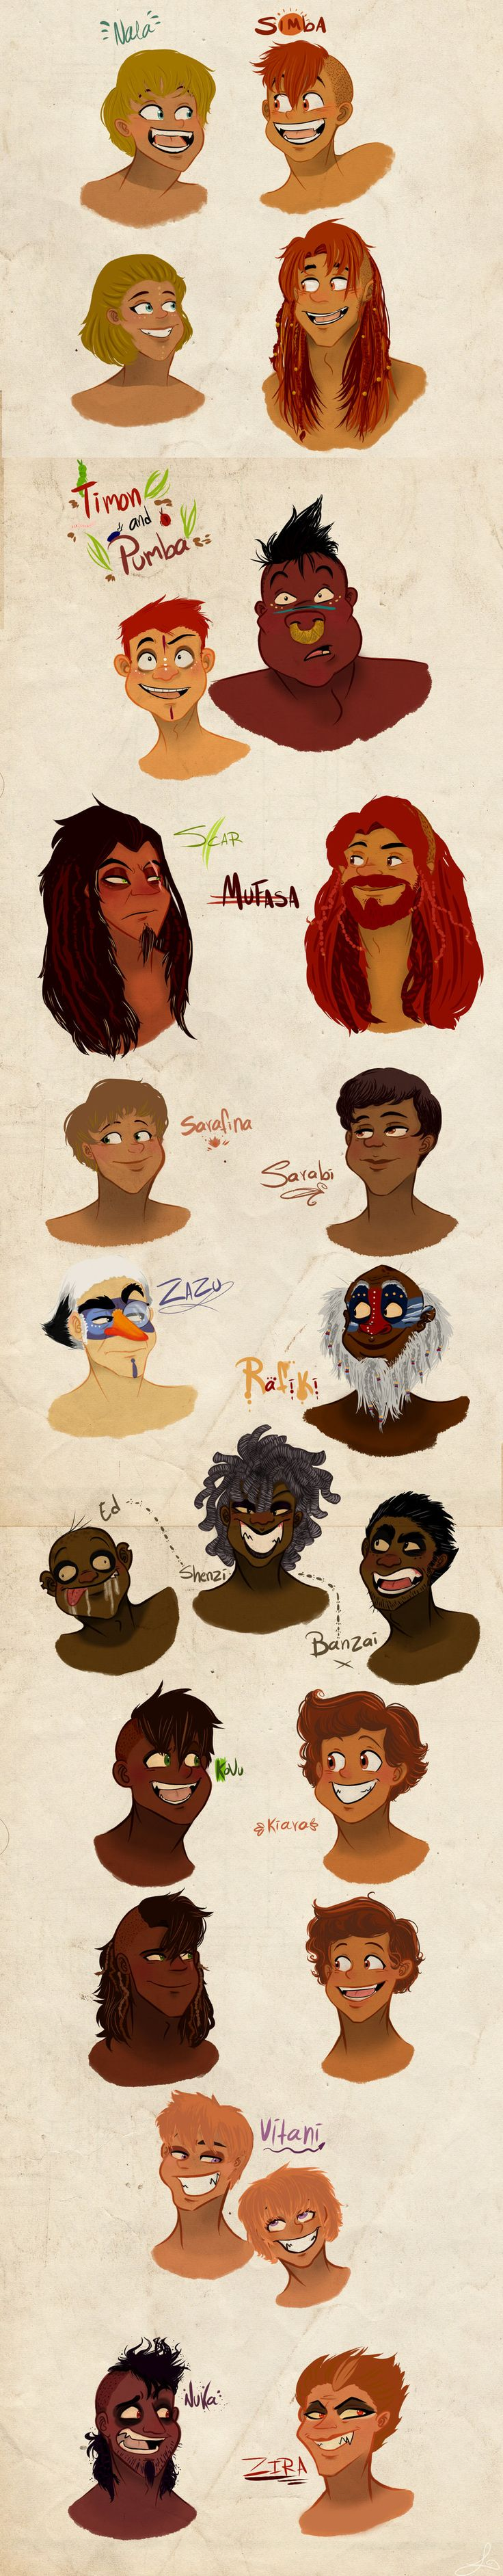 the lion king character analysis